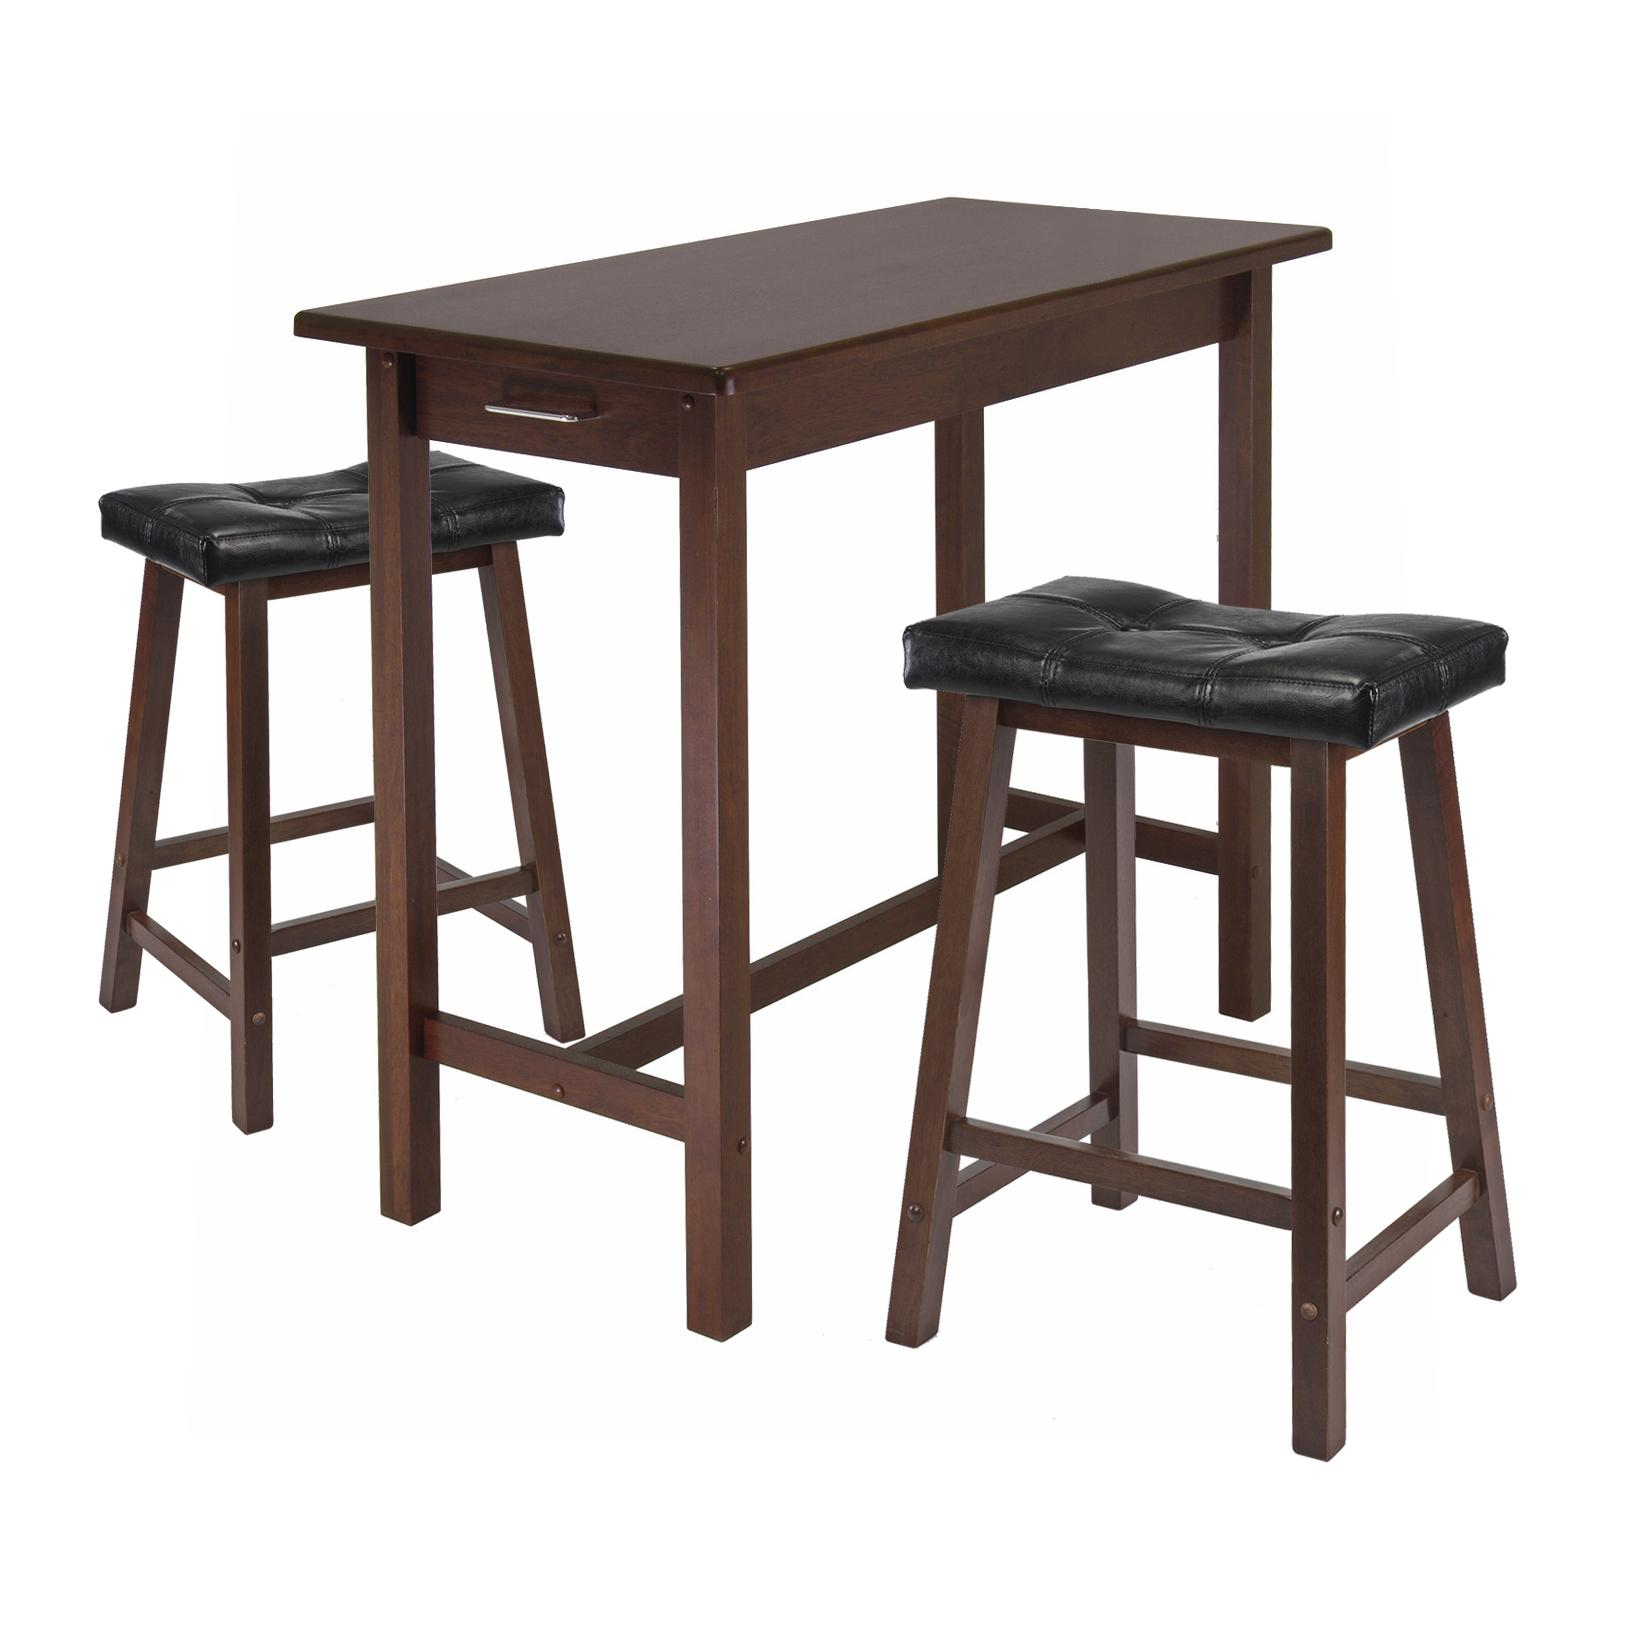 Shopko Kitchen Tables Amazon winsome kitchen island table with 2 cushion saddle seat view larger workwithnaturefo